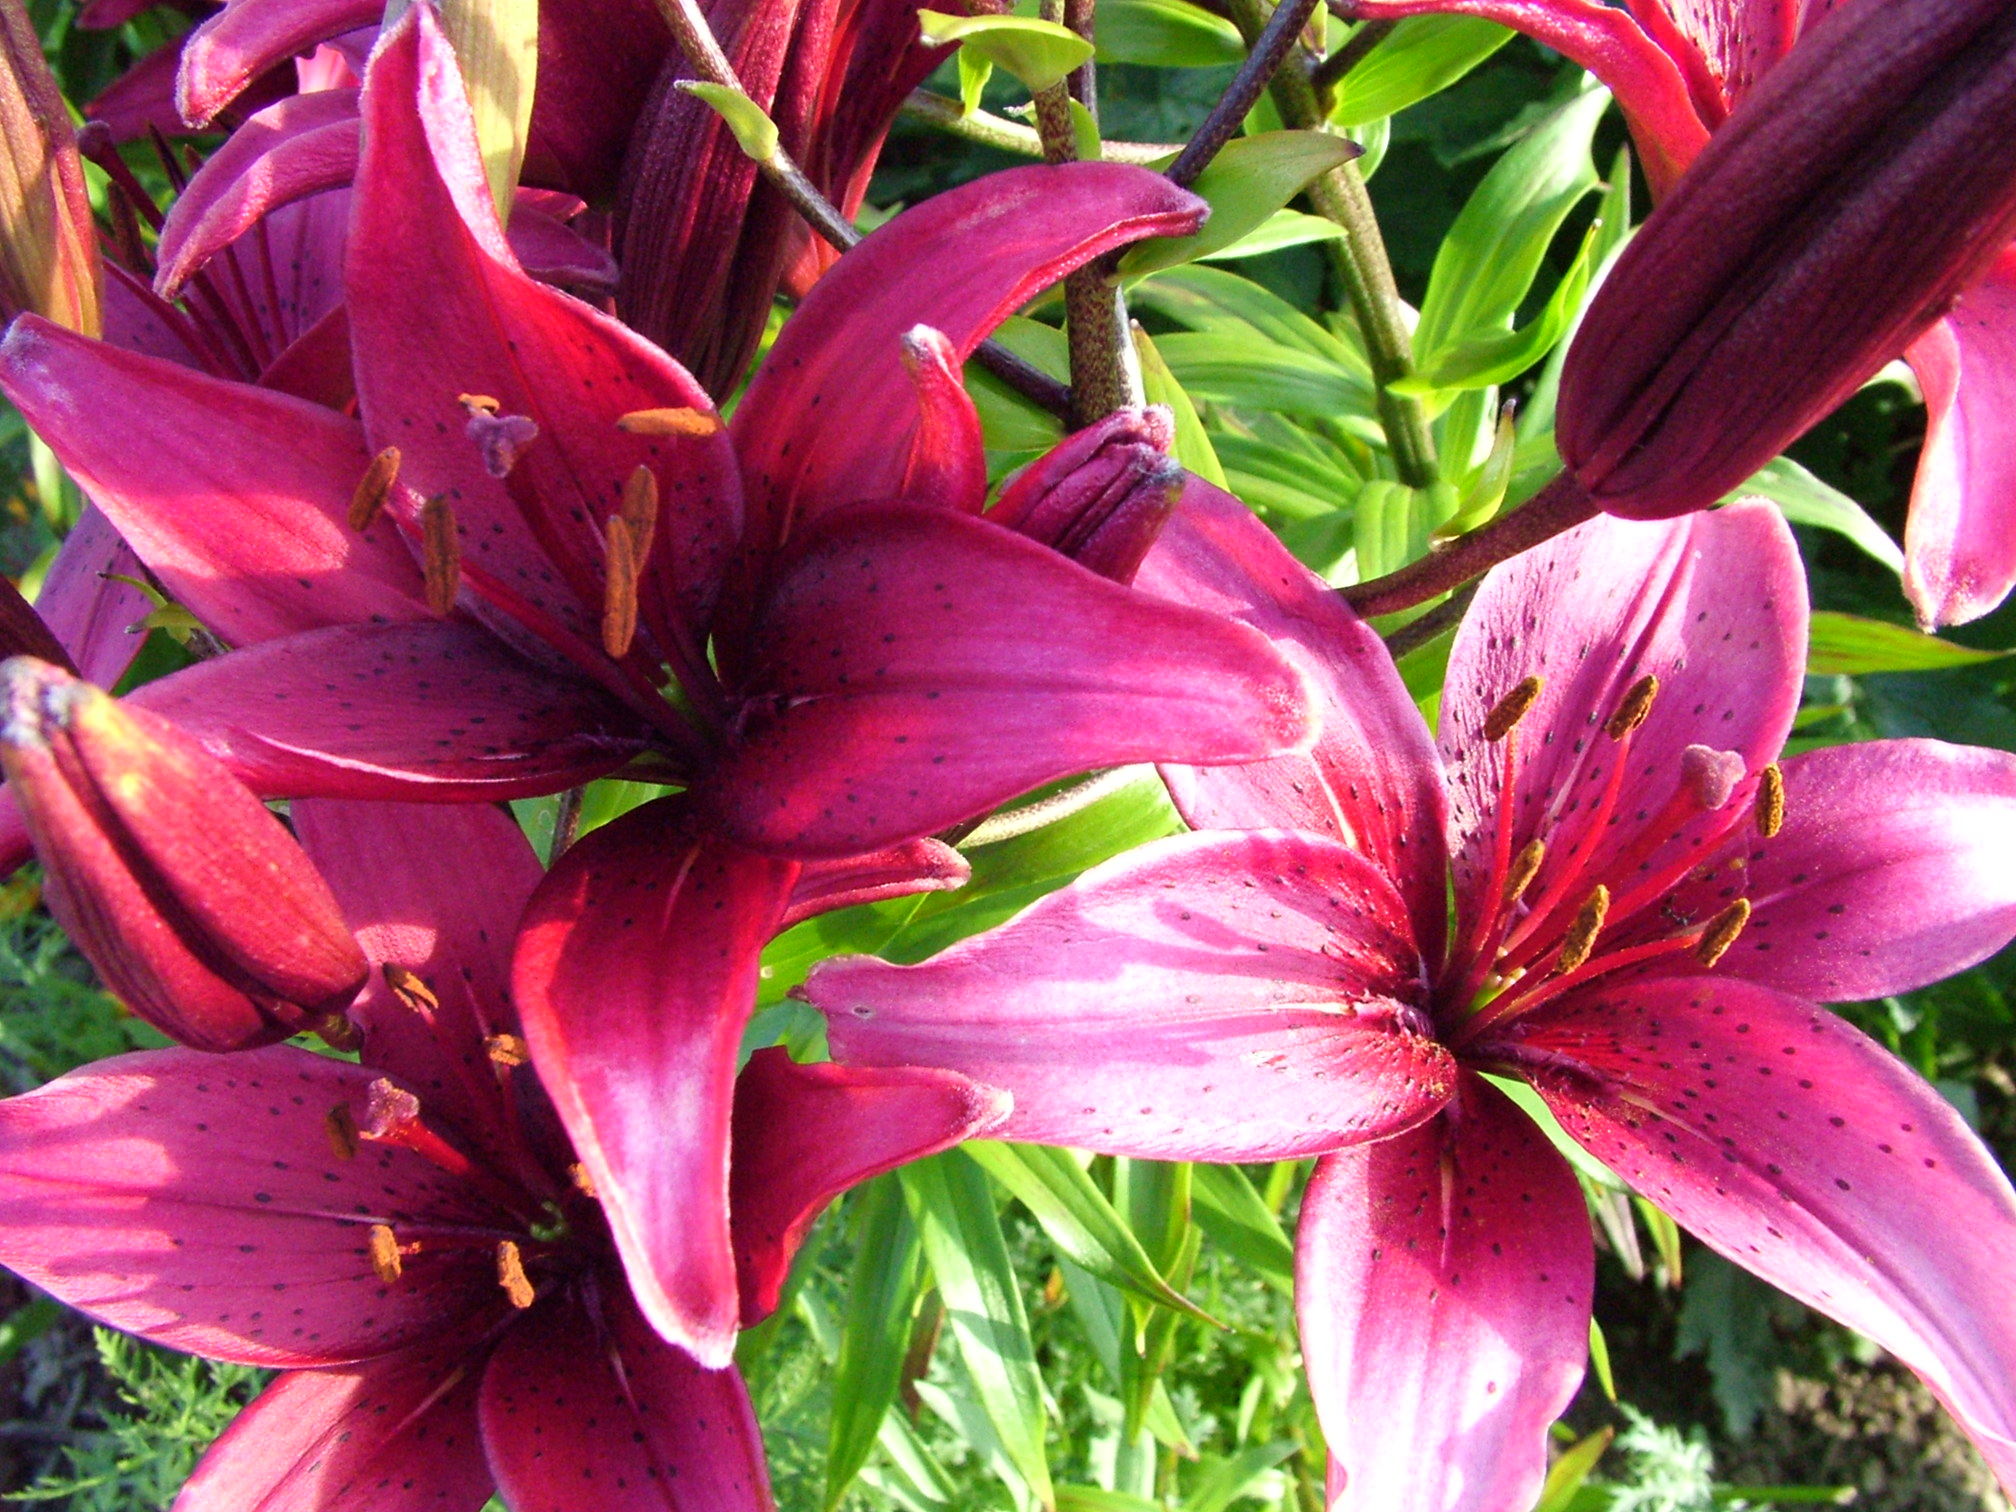 Free pictures of lily flowers jpg black and white download Lily flower pictures free - ClipartFest jpg black and white download